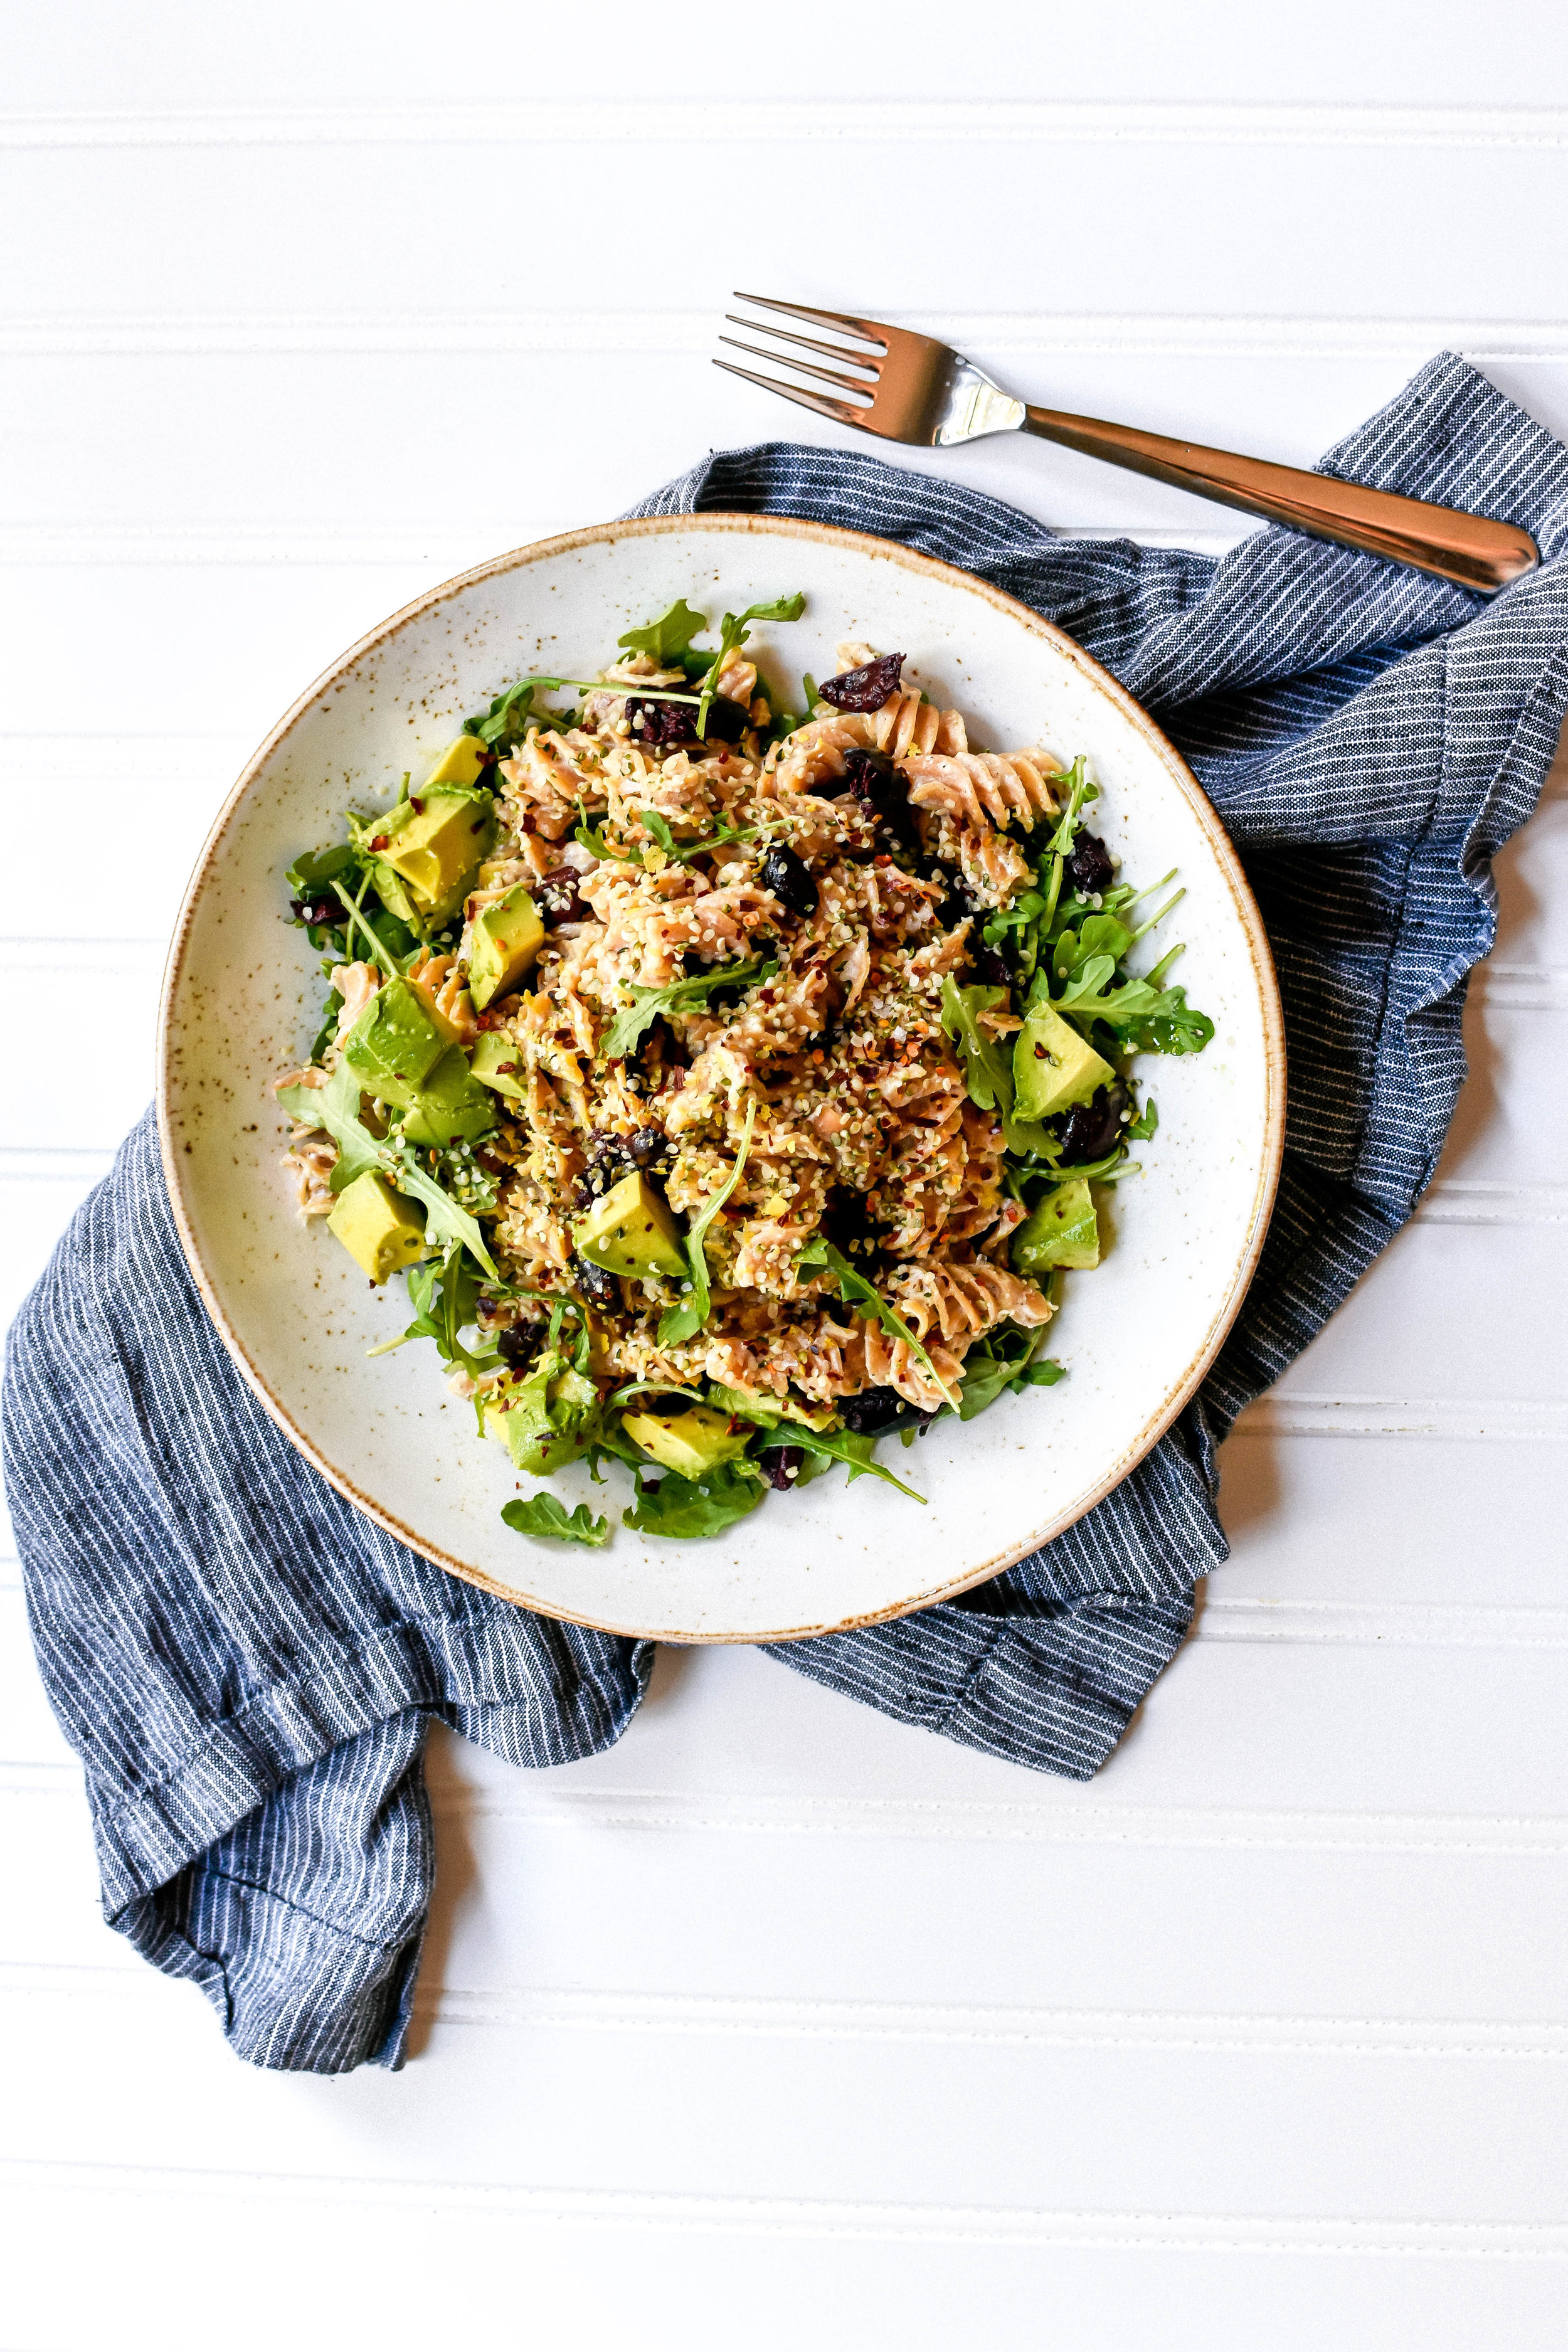 simple lentil pasta in white bowl with napkin underneath